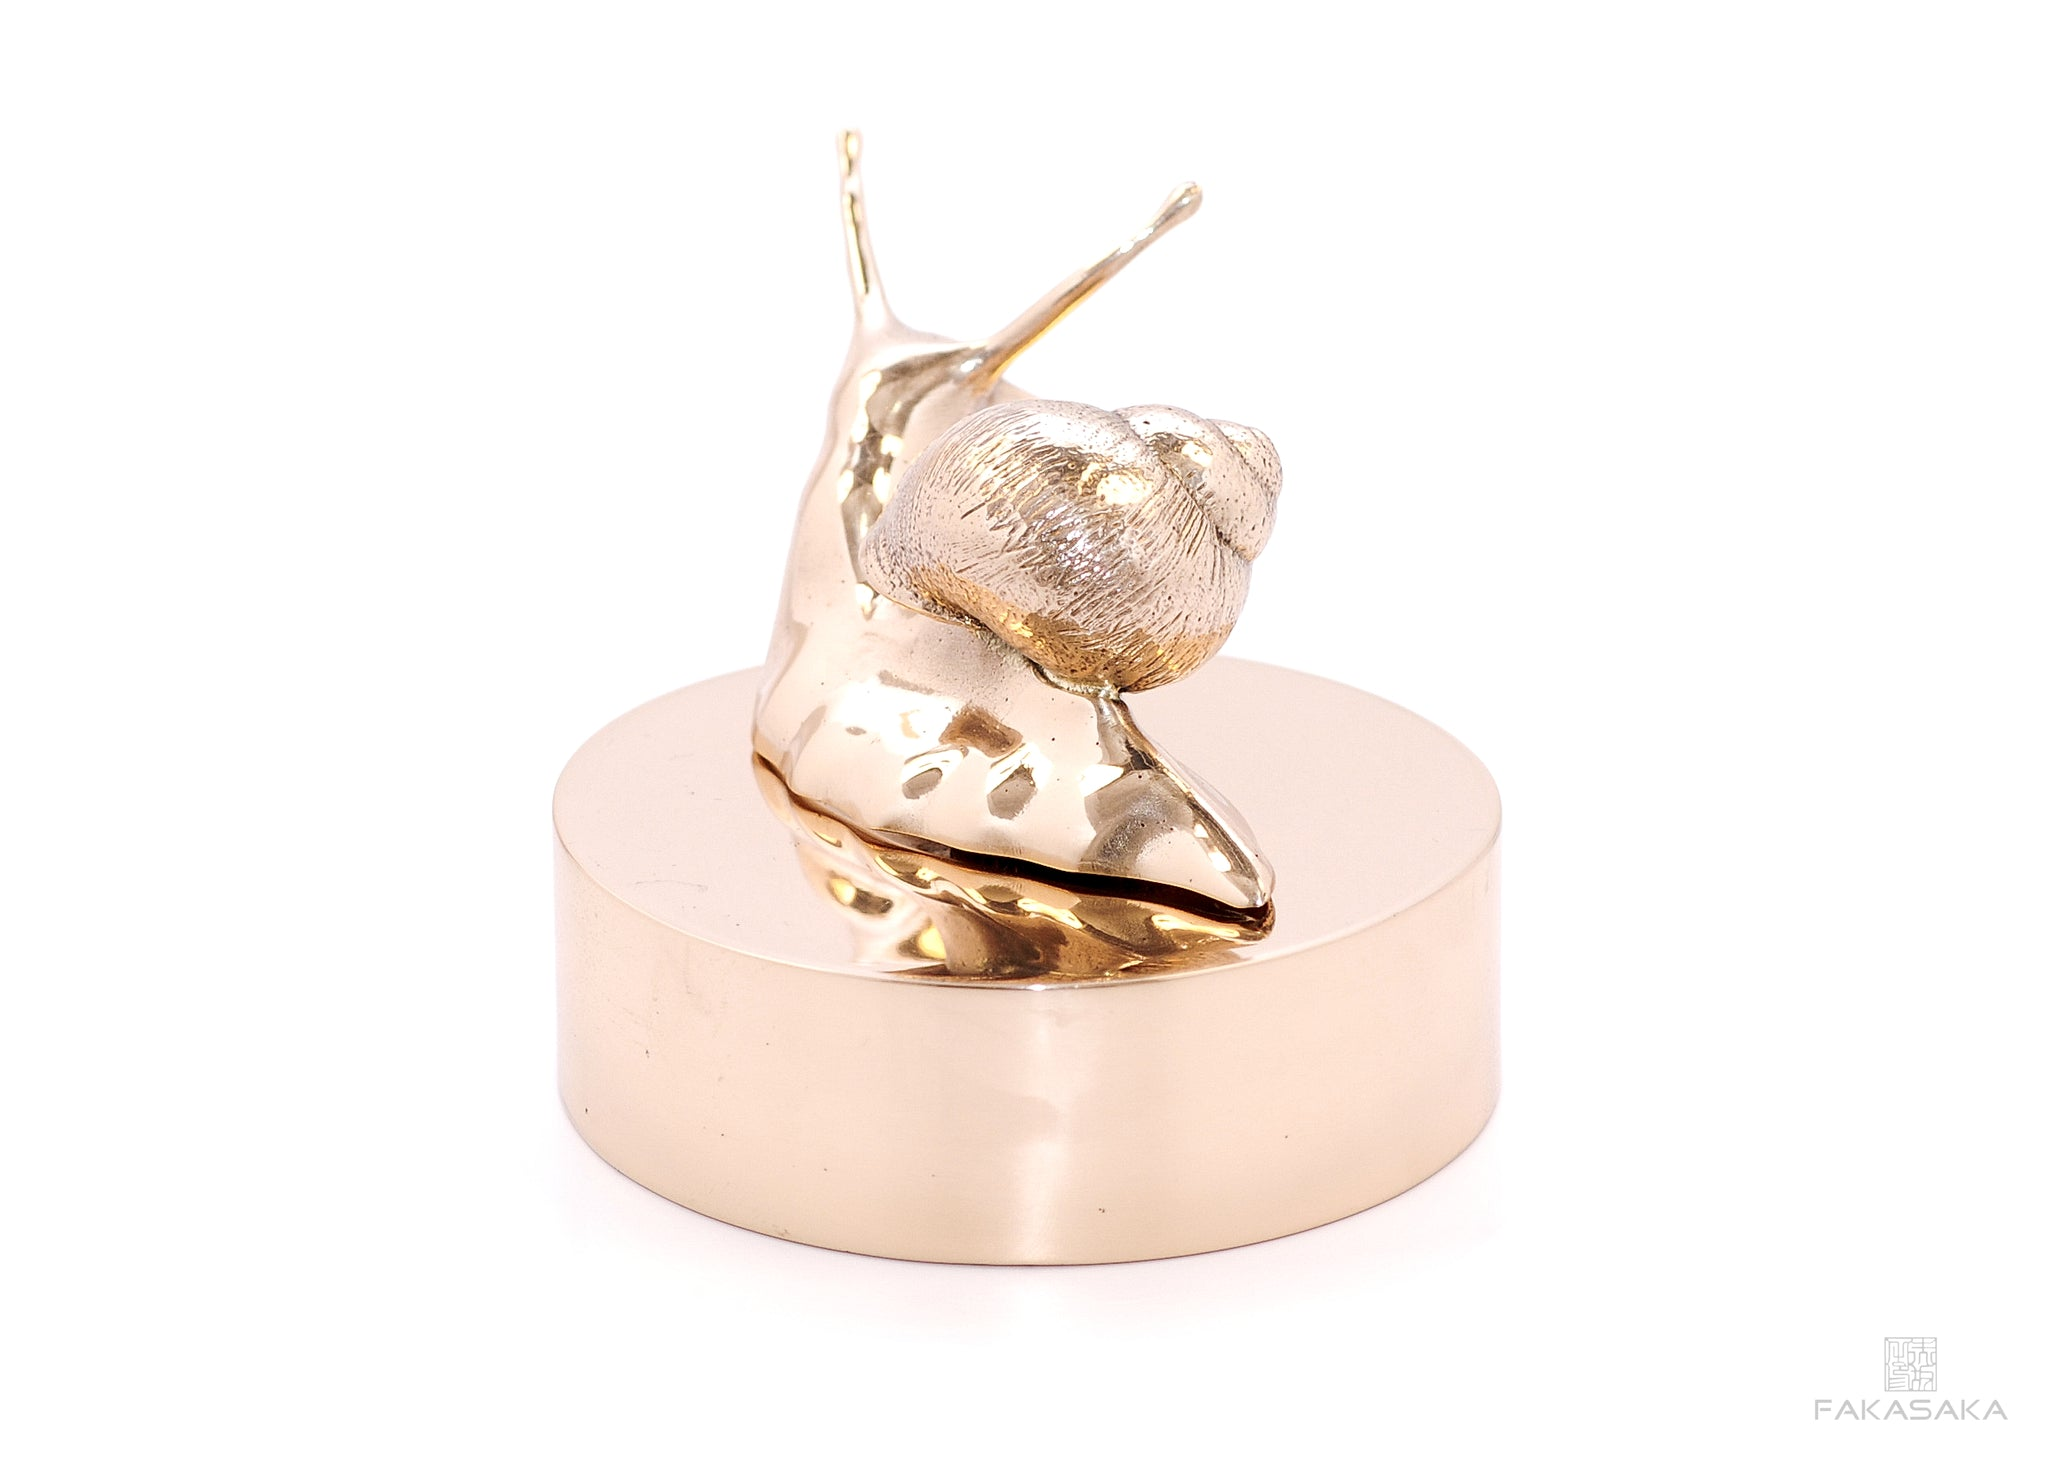 L' ESCARGOT DROITE<br><br>SCULPTURE / PAPER WEIGHT<br><br>POLISHED BRONZE<br>BRONZE BASE